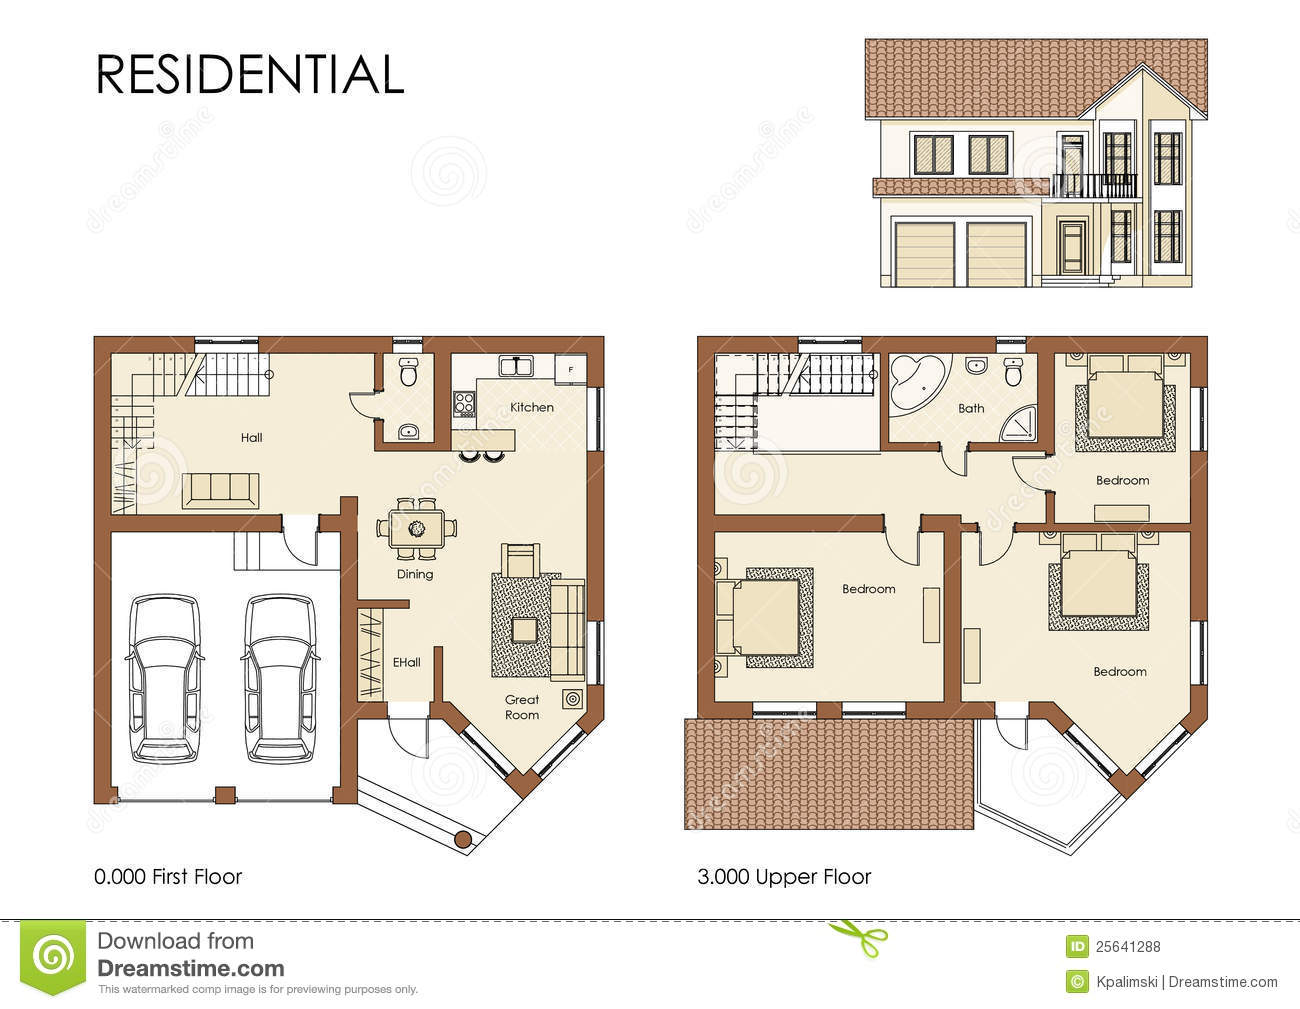 Residential house plan royalty free stock photos image for Residential home design